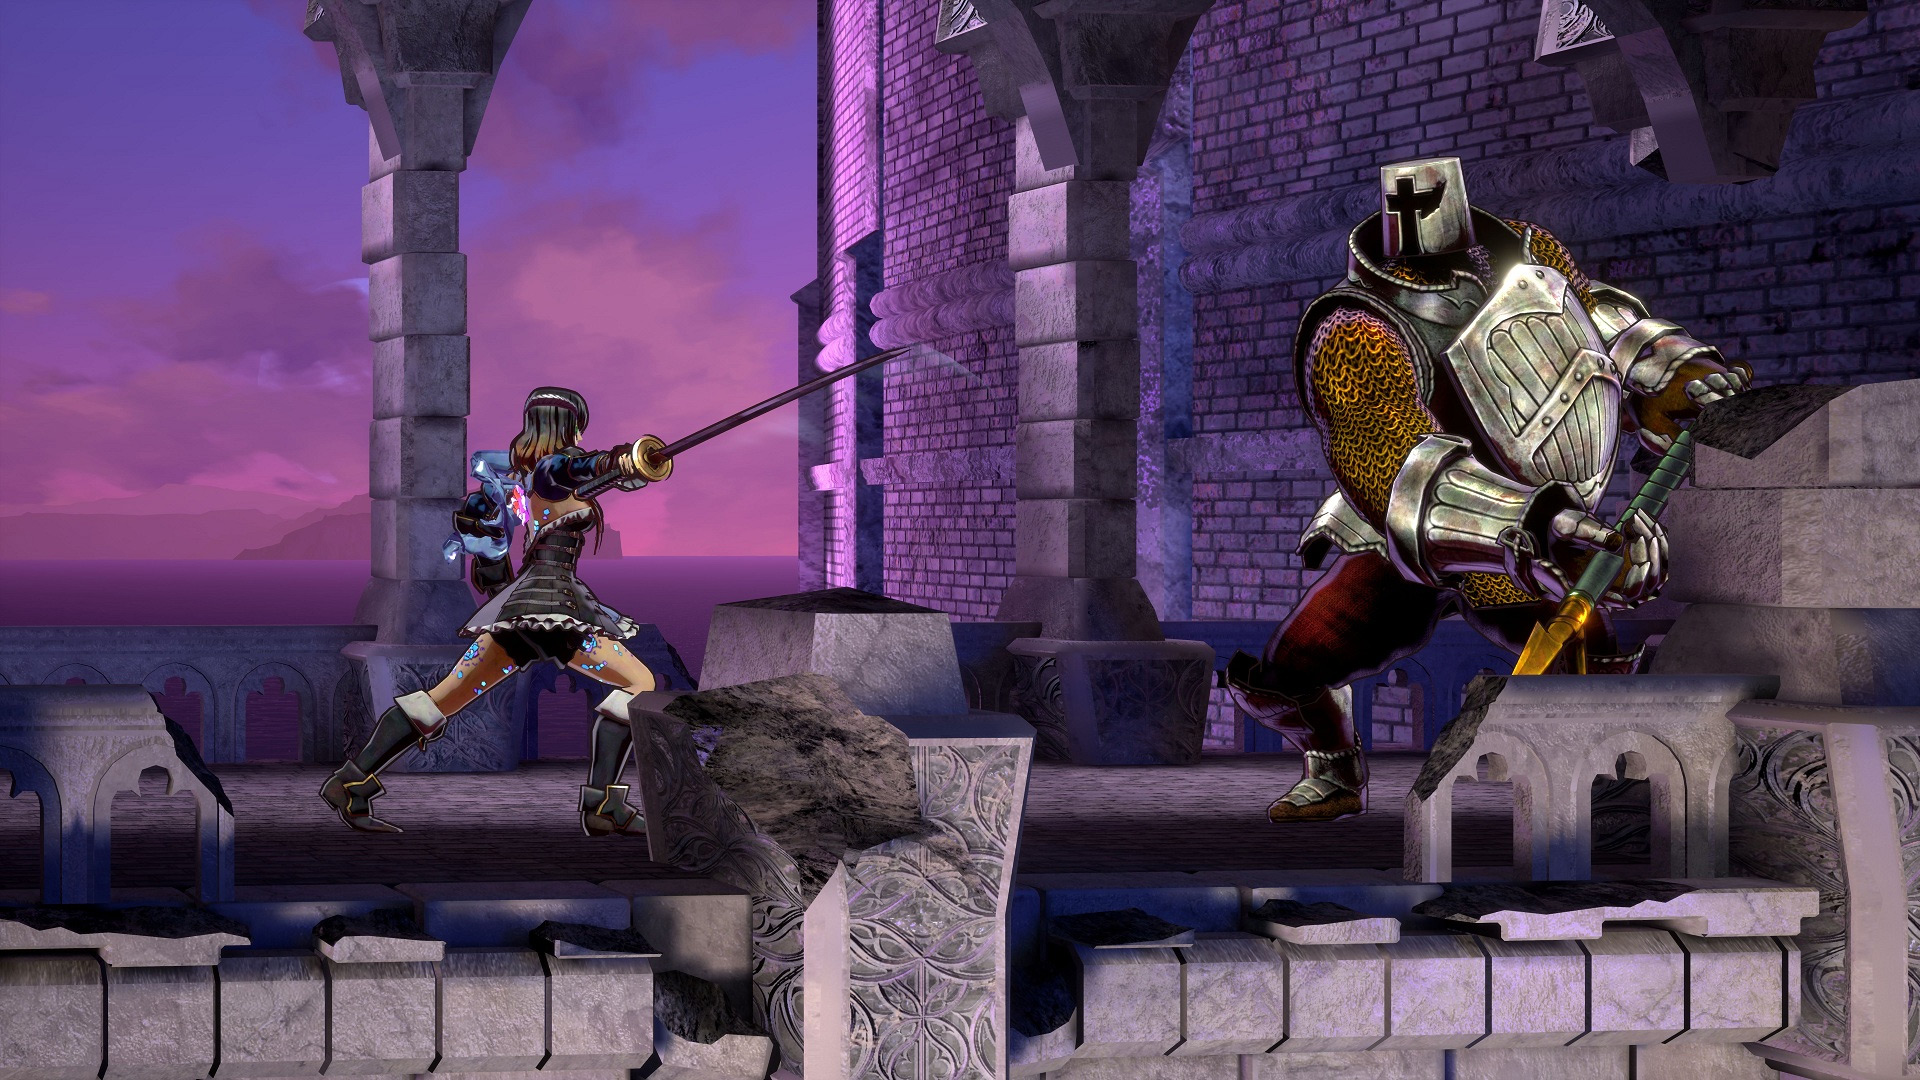 WayForward tapped to assist with development on Bloodstained screenshot